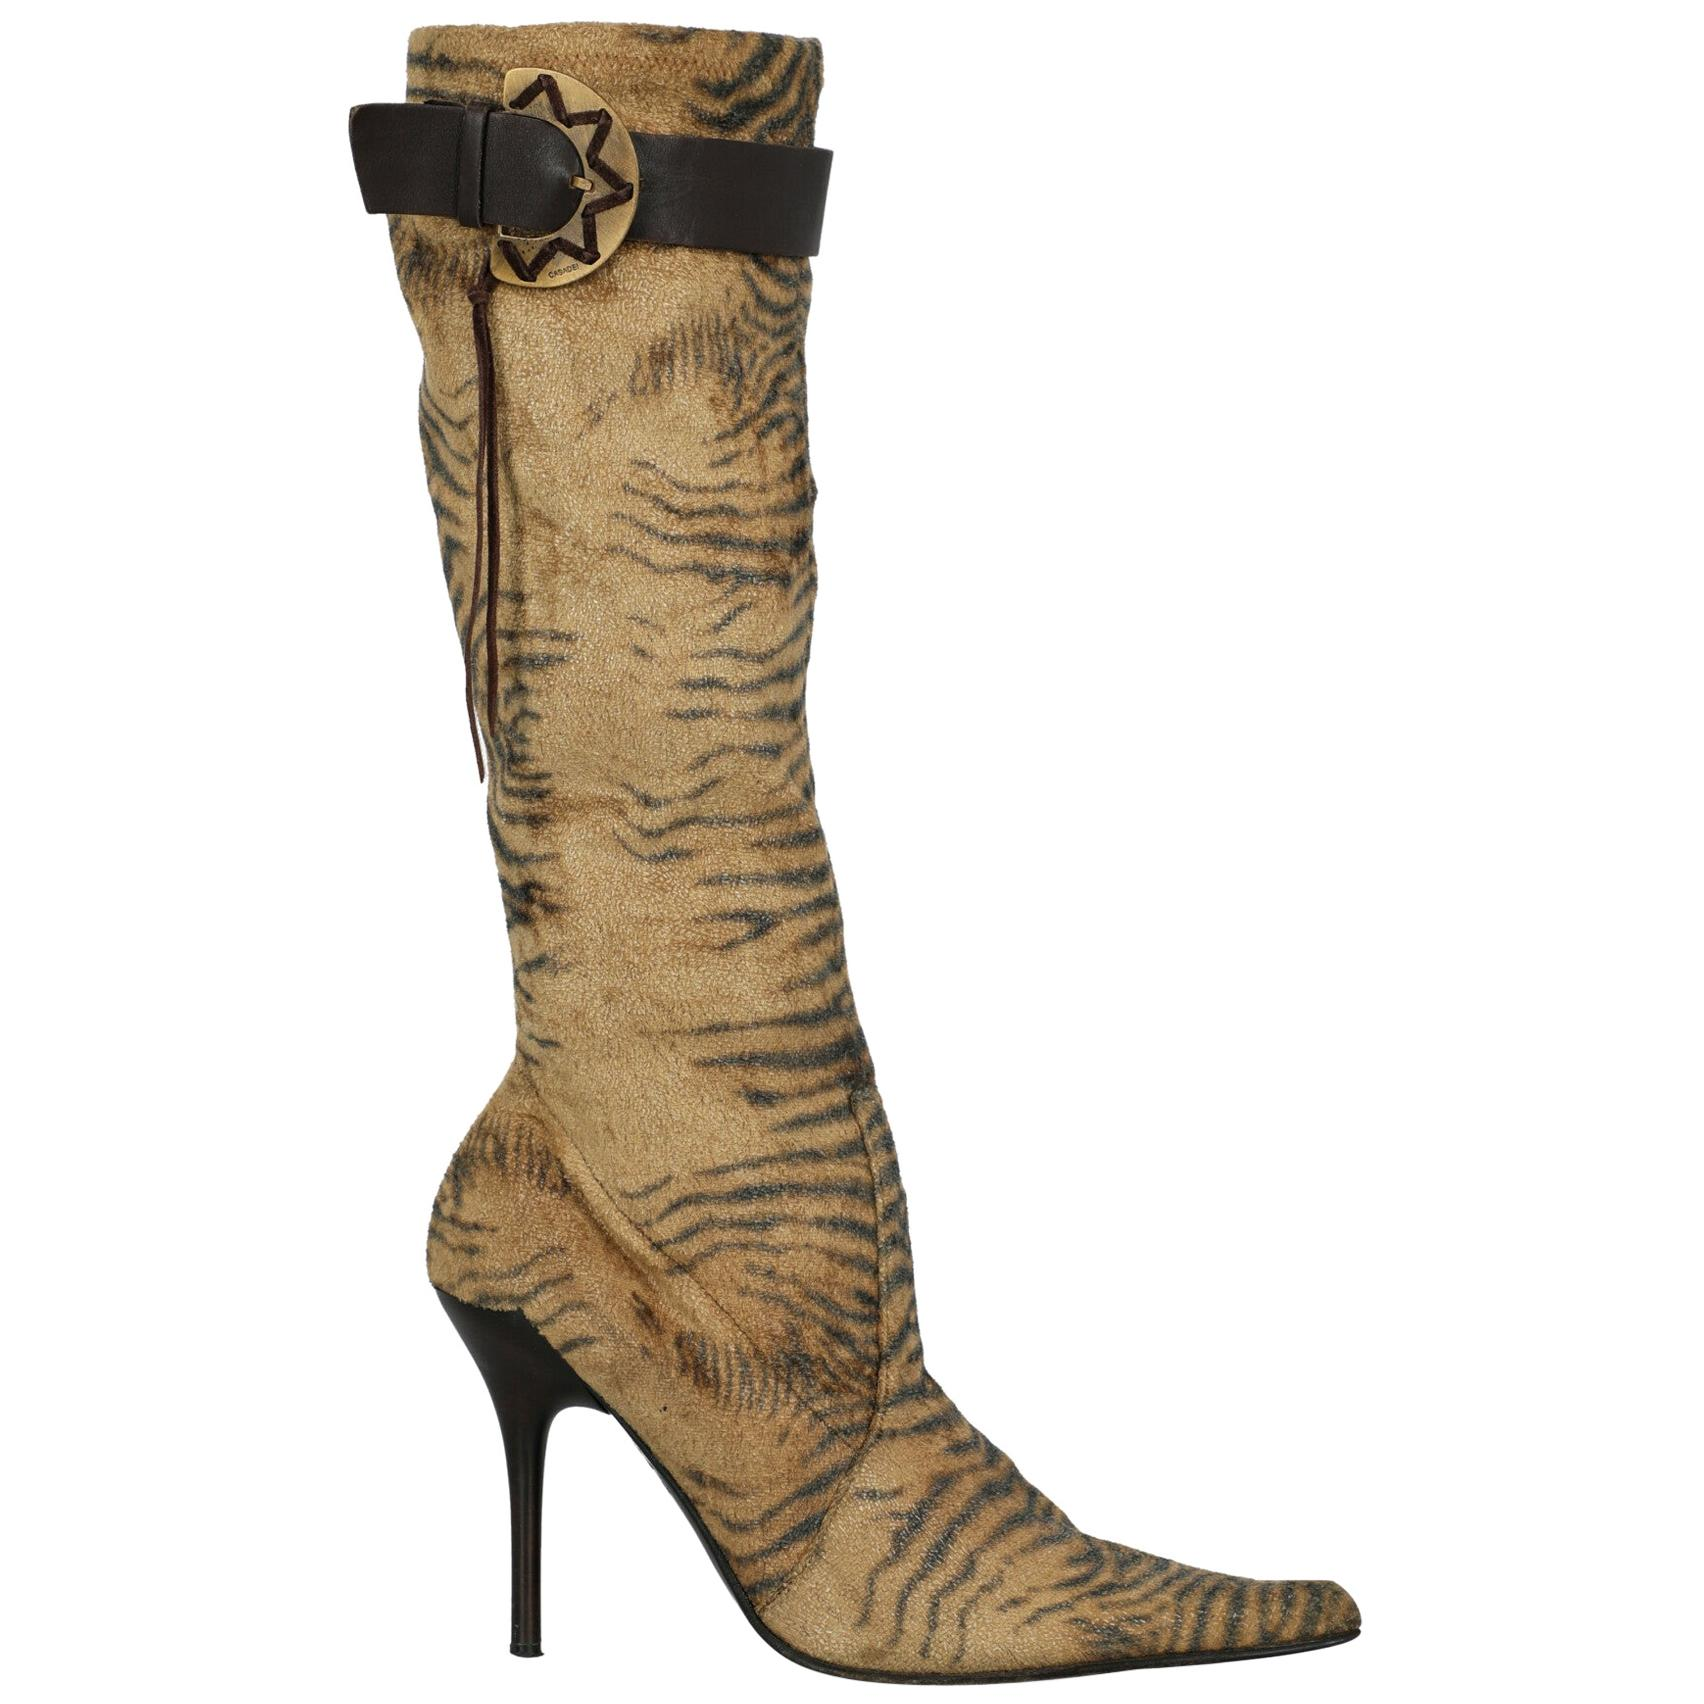 Casadei Woman Boots Beige Synthetic Fibers US 7.5